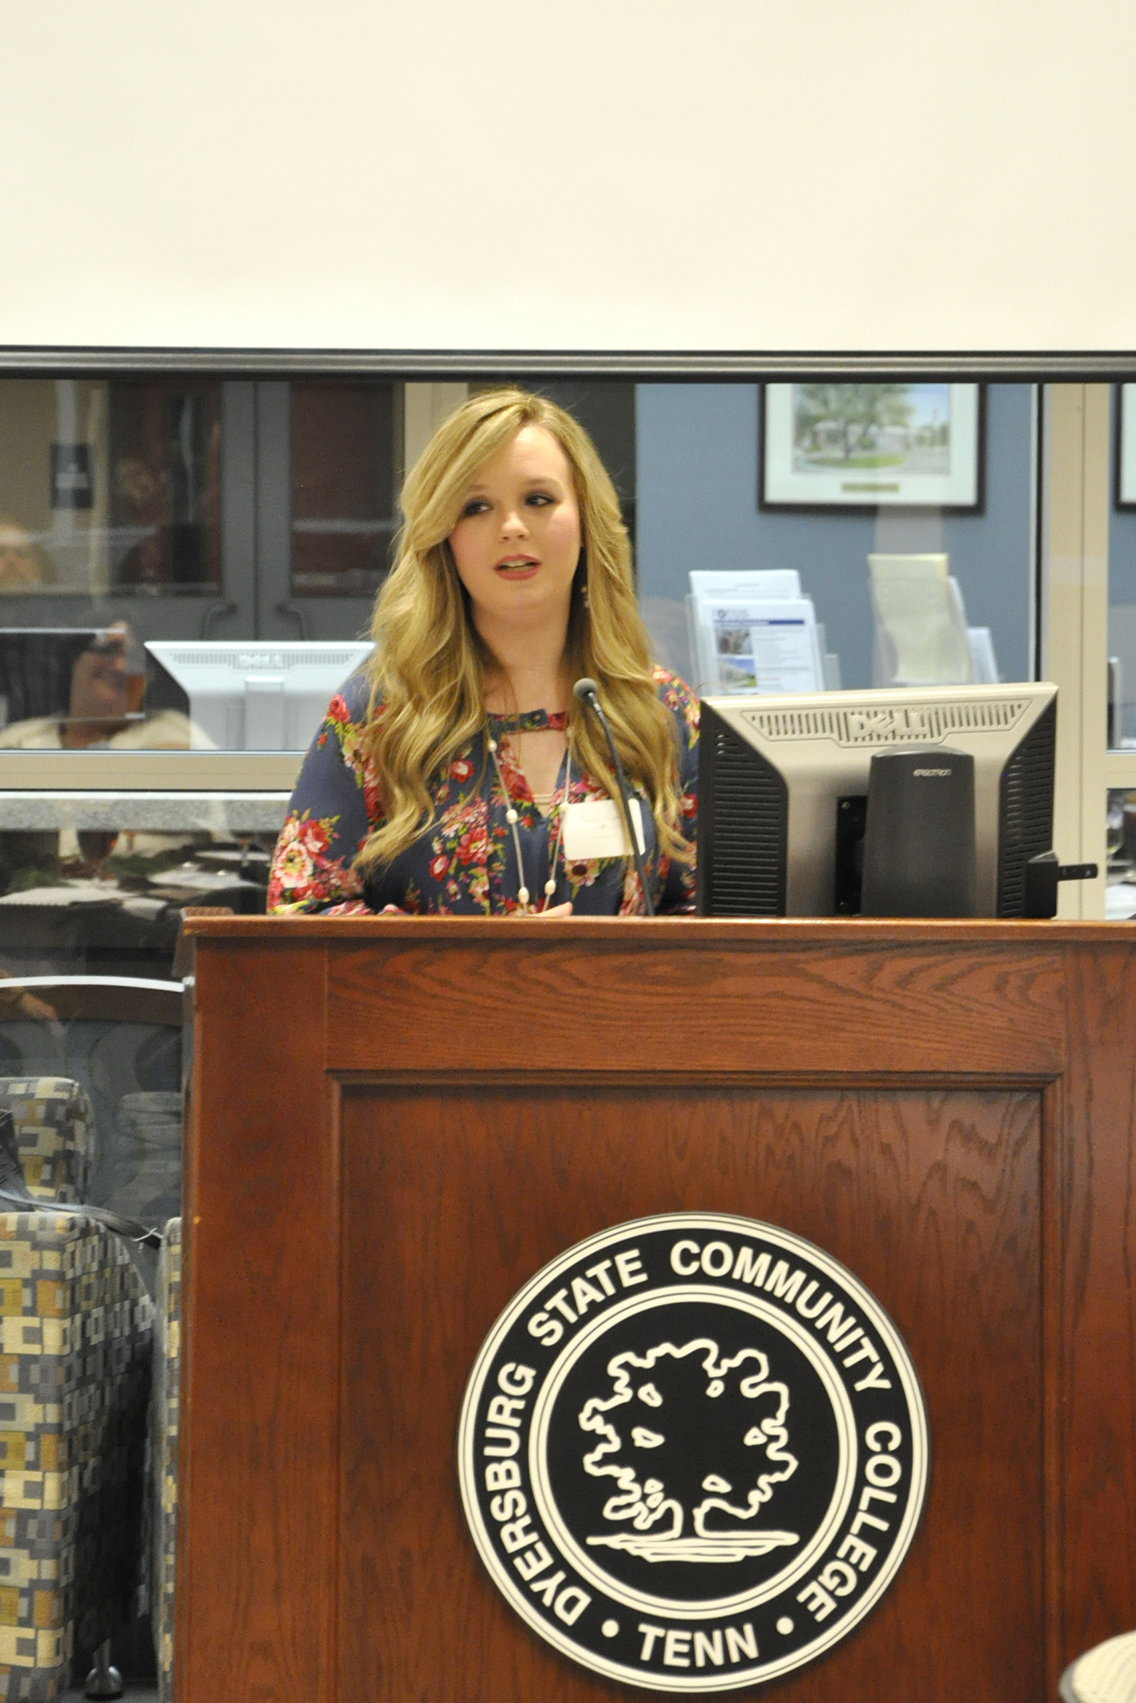 DSCC nursing student Danielle Reynolds of Dyersburg thanked board members for their support at the College's annual Foundation board meeting and dinner Nov. 15 at the Student Center on the Dyersburg campus.